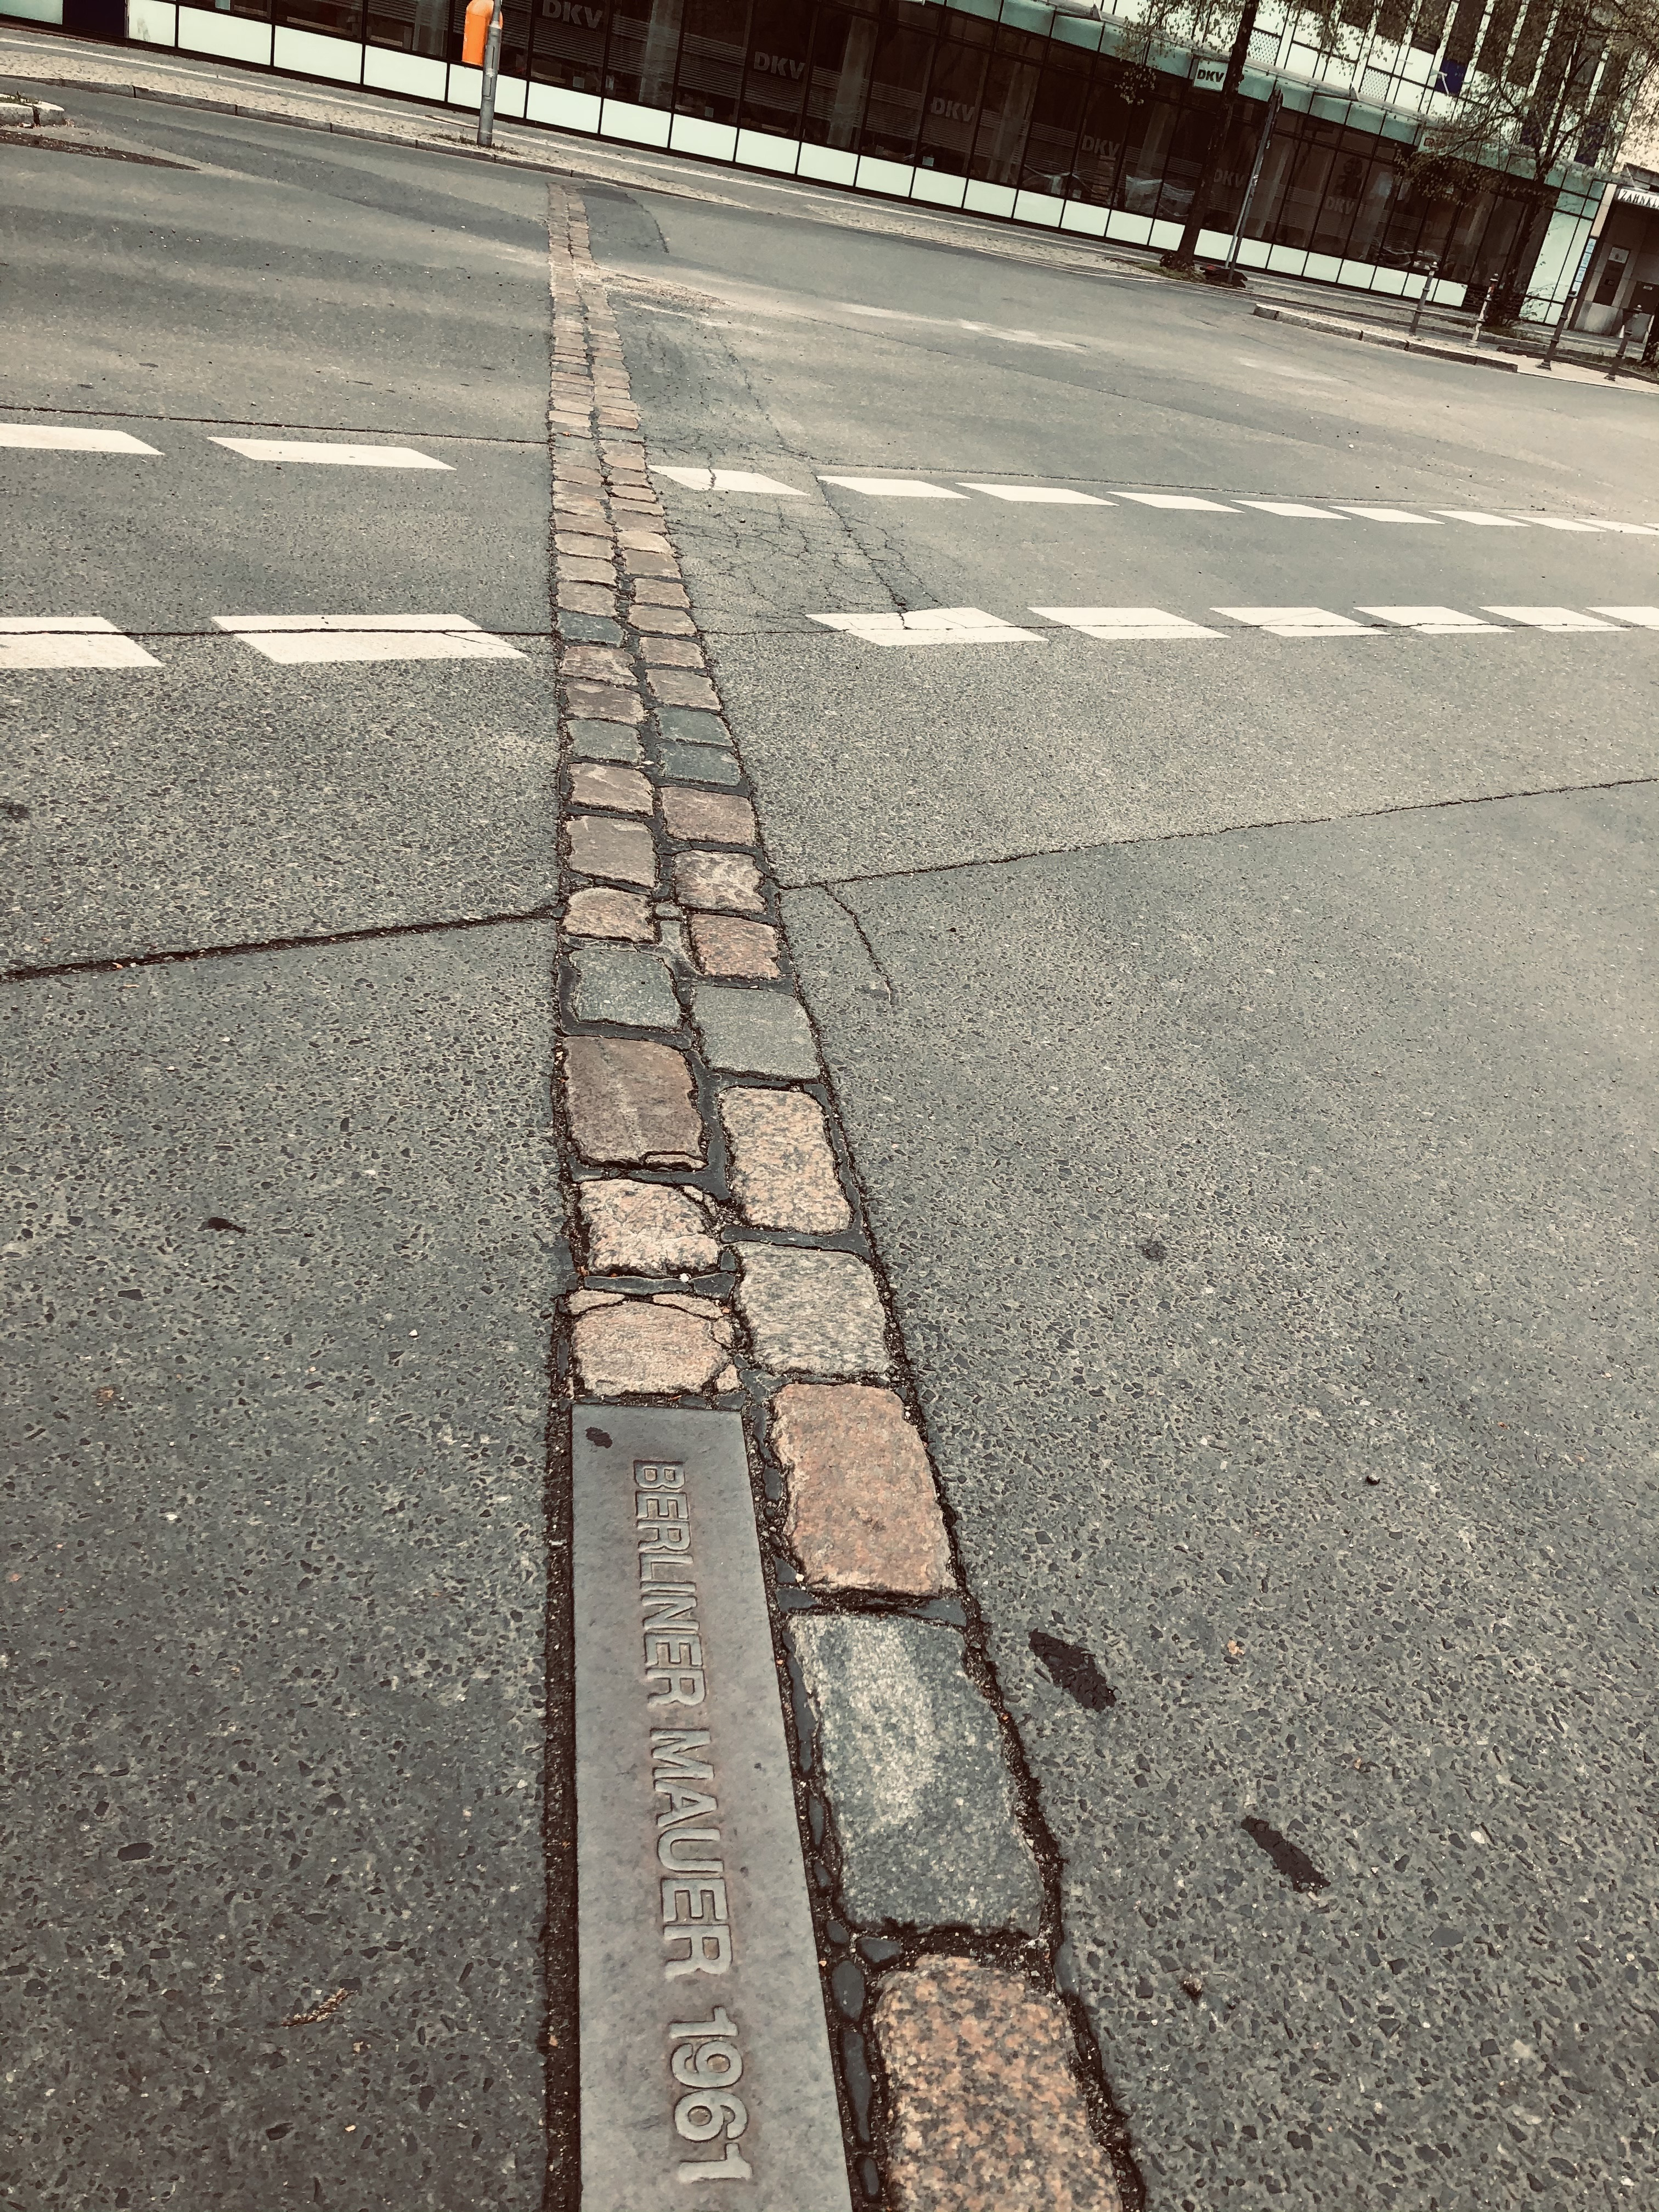 The double brick line showing how the wall divided is now a street connecting major transport hubs in Berlin